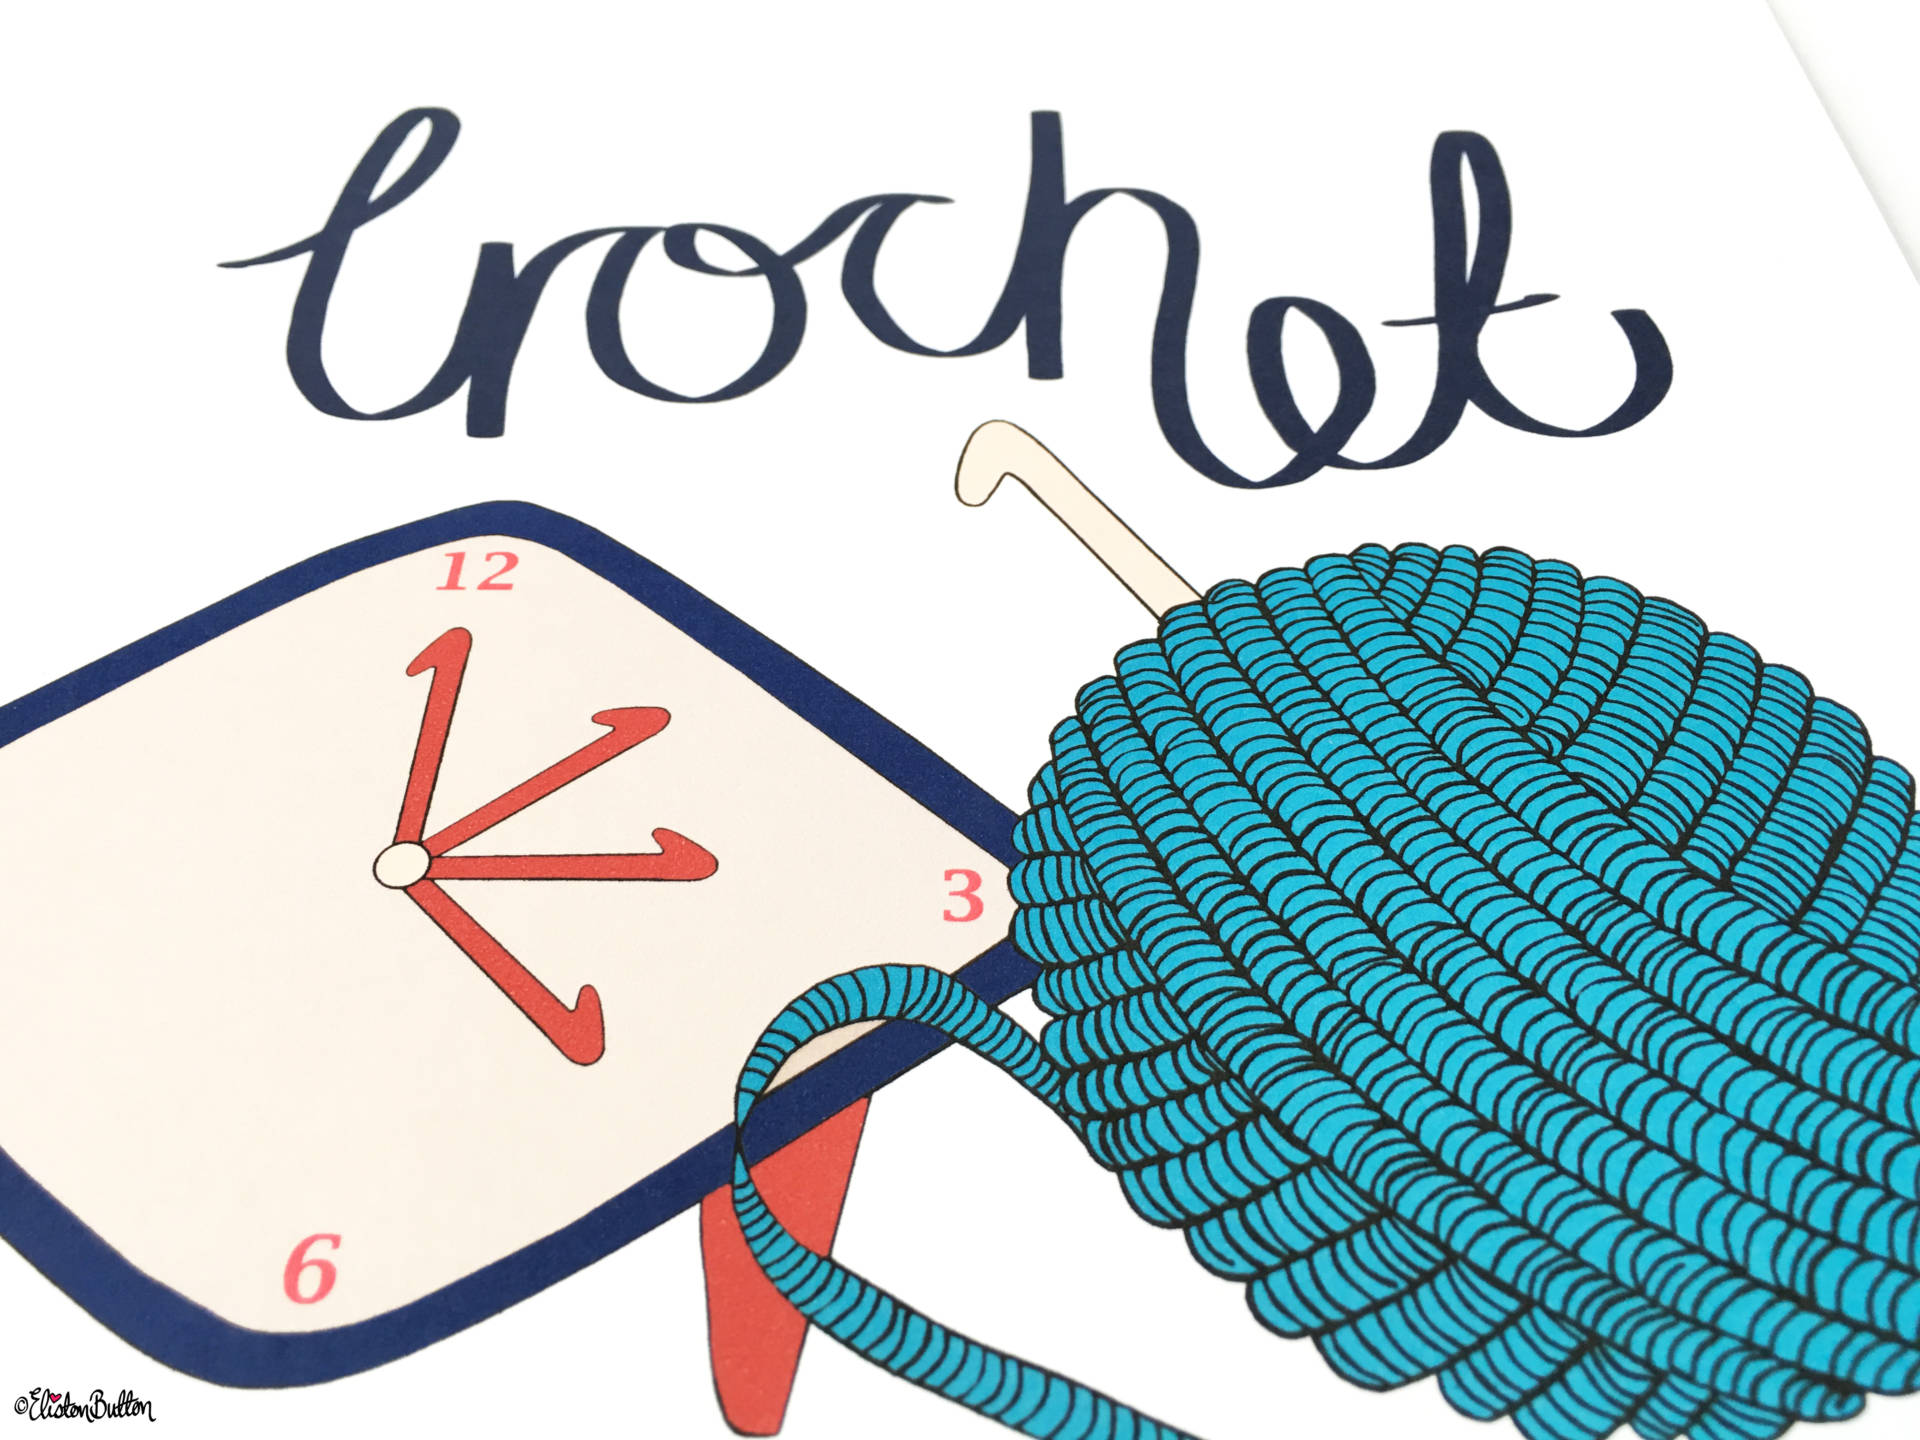 Crochet the Day Away Wall Art Print by Eliston Button Clock and Ball of Yarn Illustration - Create 30 – No. 3 & 4 – Crochet Illustrated Quote Prints at www.elistonbutton.com - Eliston Button - That Crafty Kid – Art, Design, Craft & Adventure.